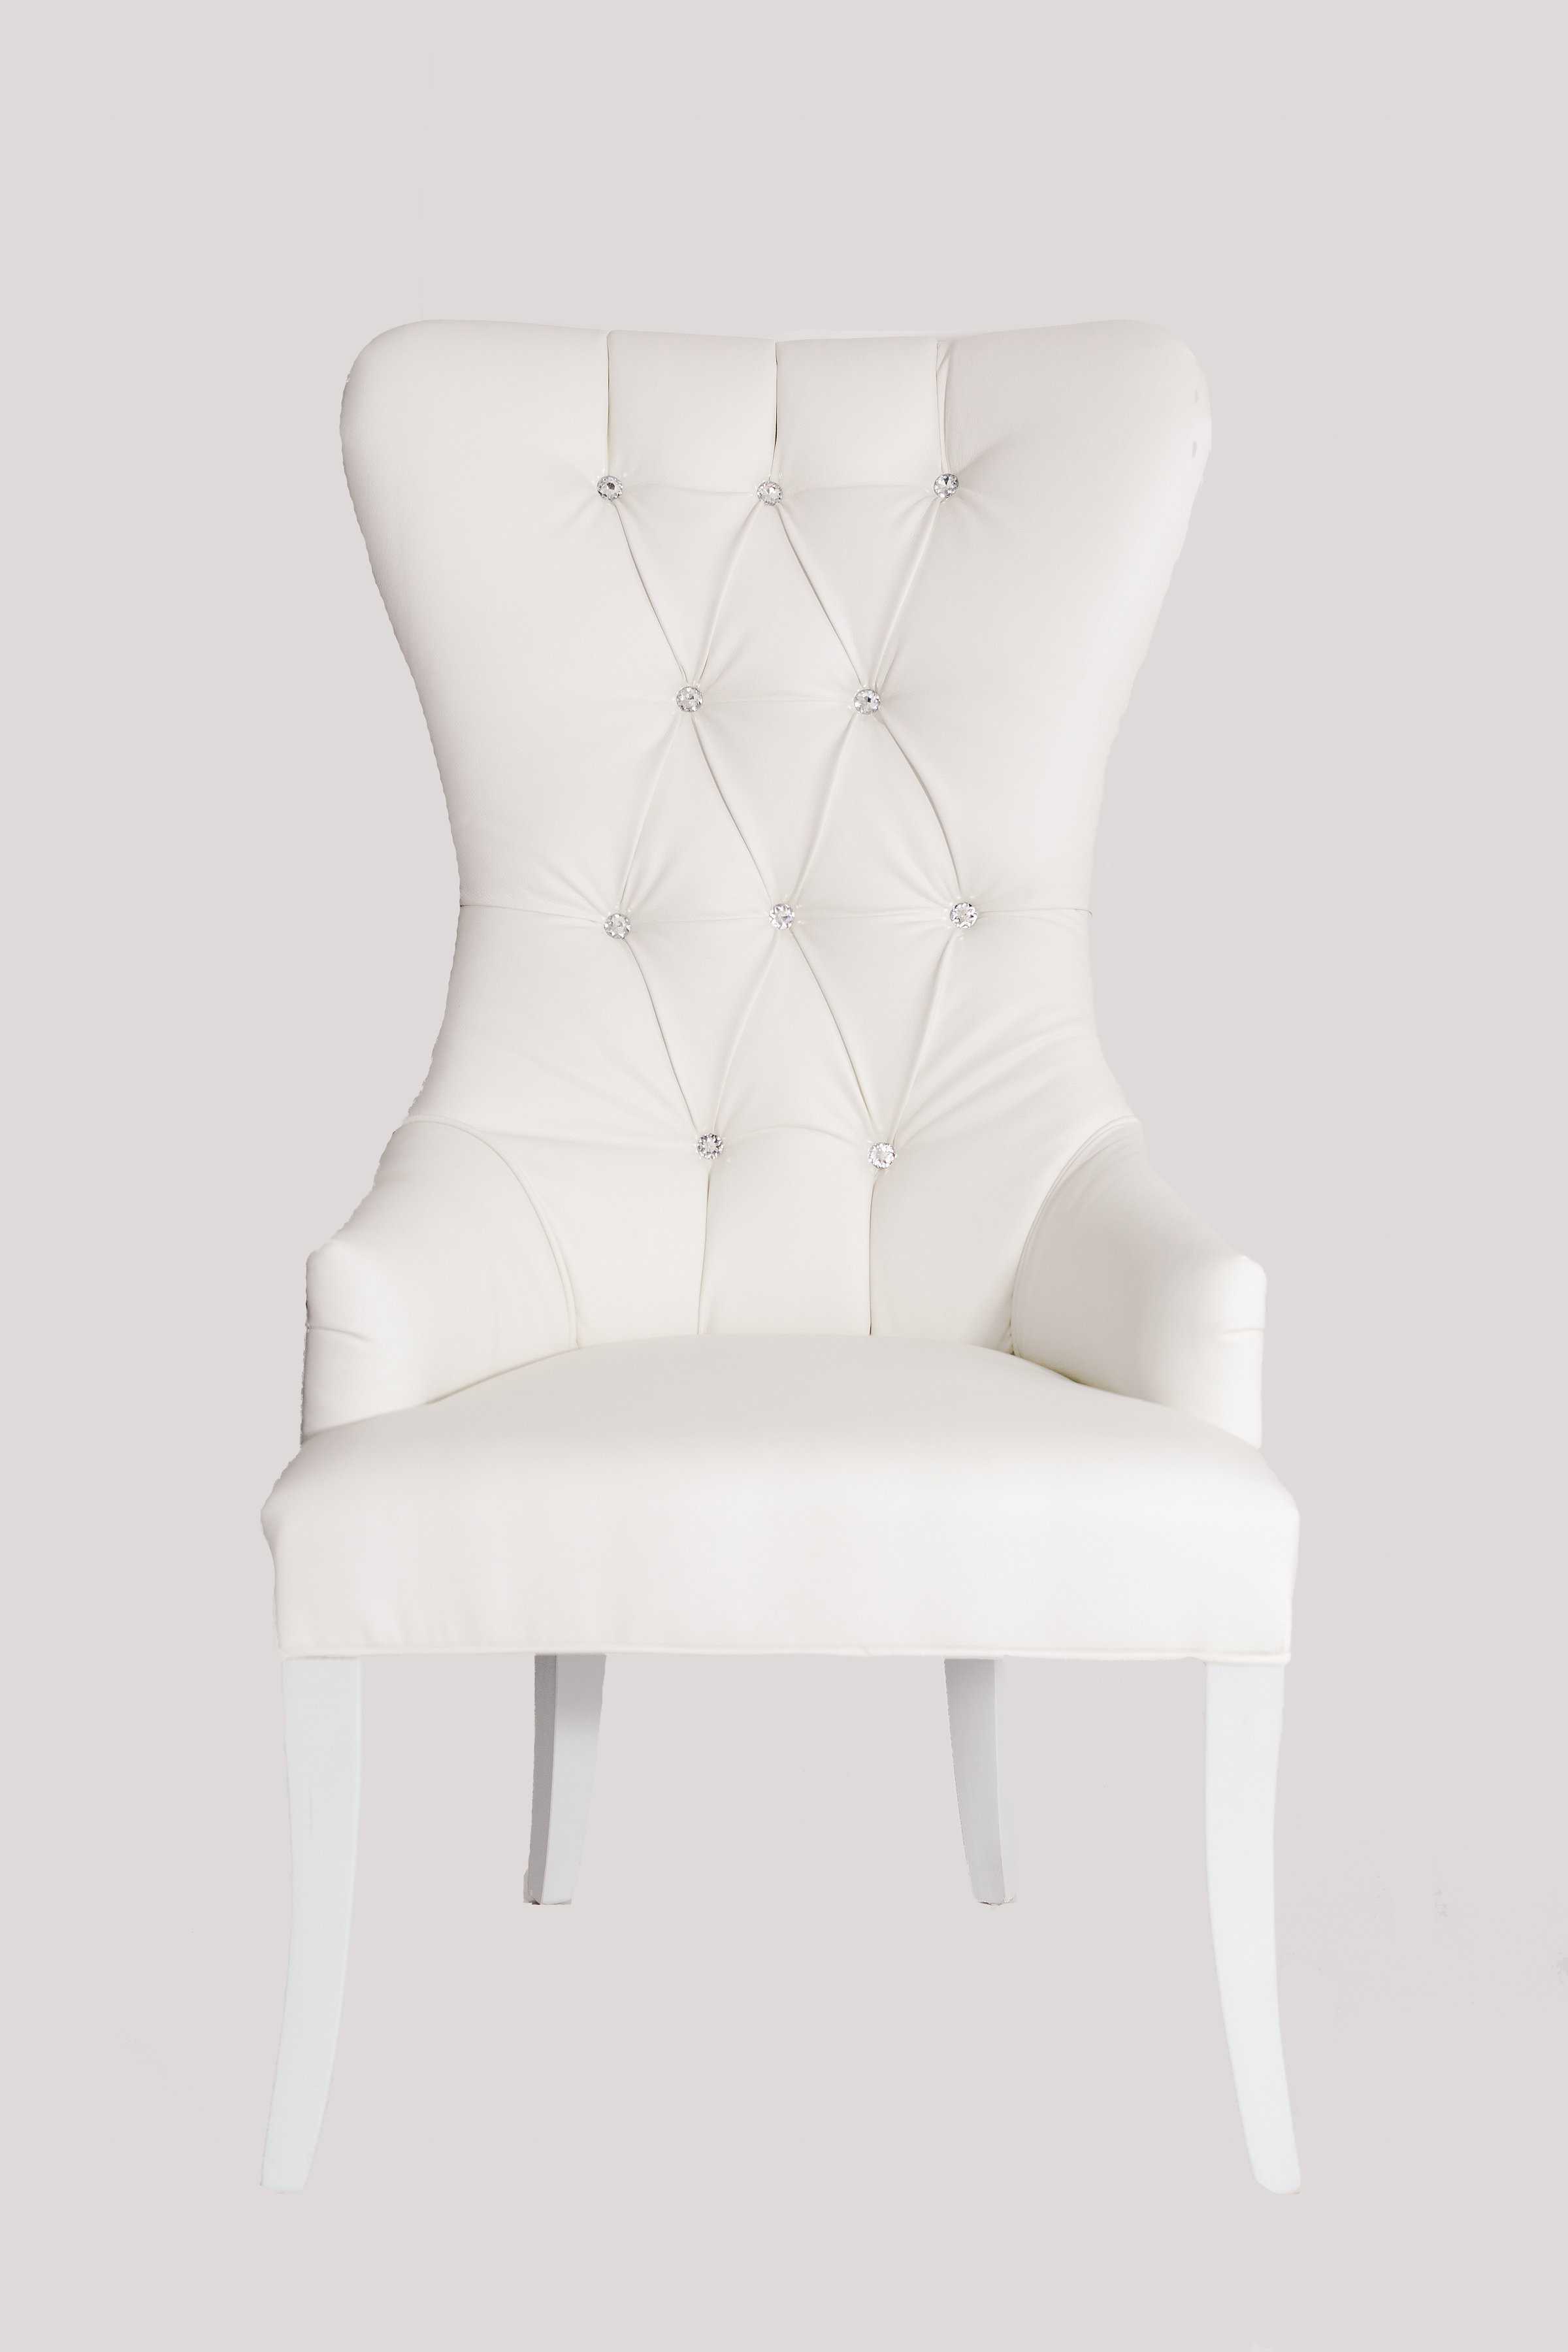 chair cover rentals windsor ontario target bean bag chairs covers accessories lux event rental bride groom